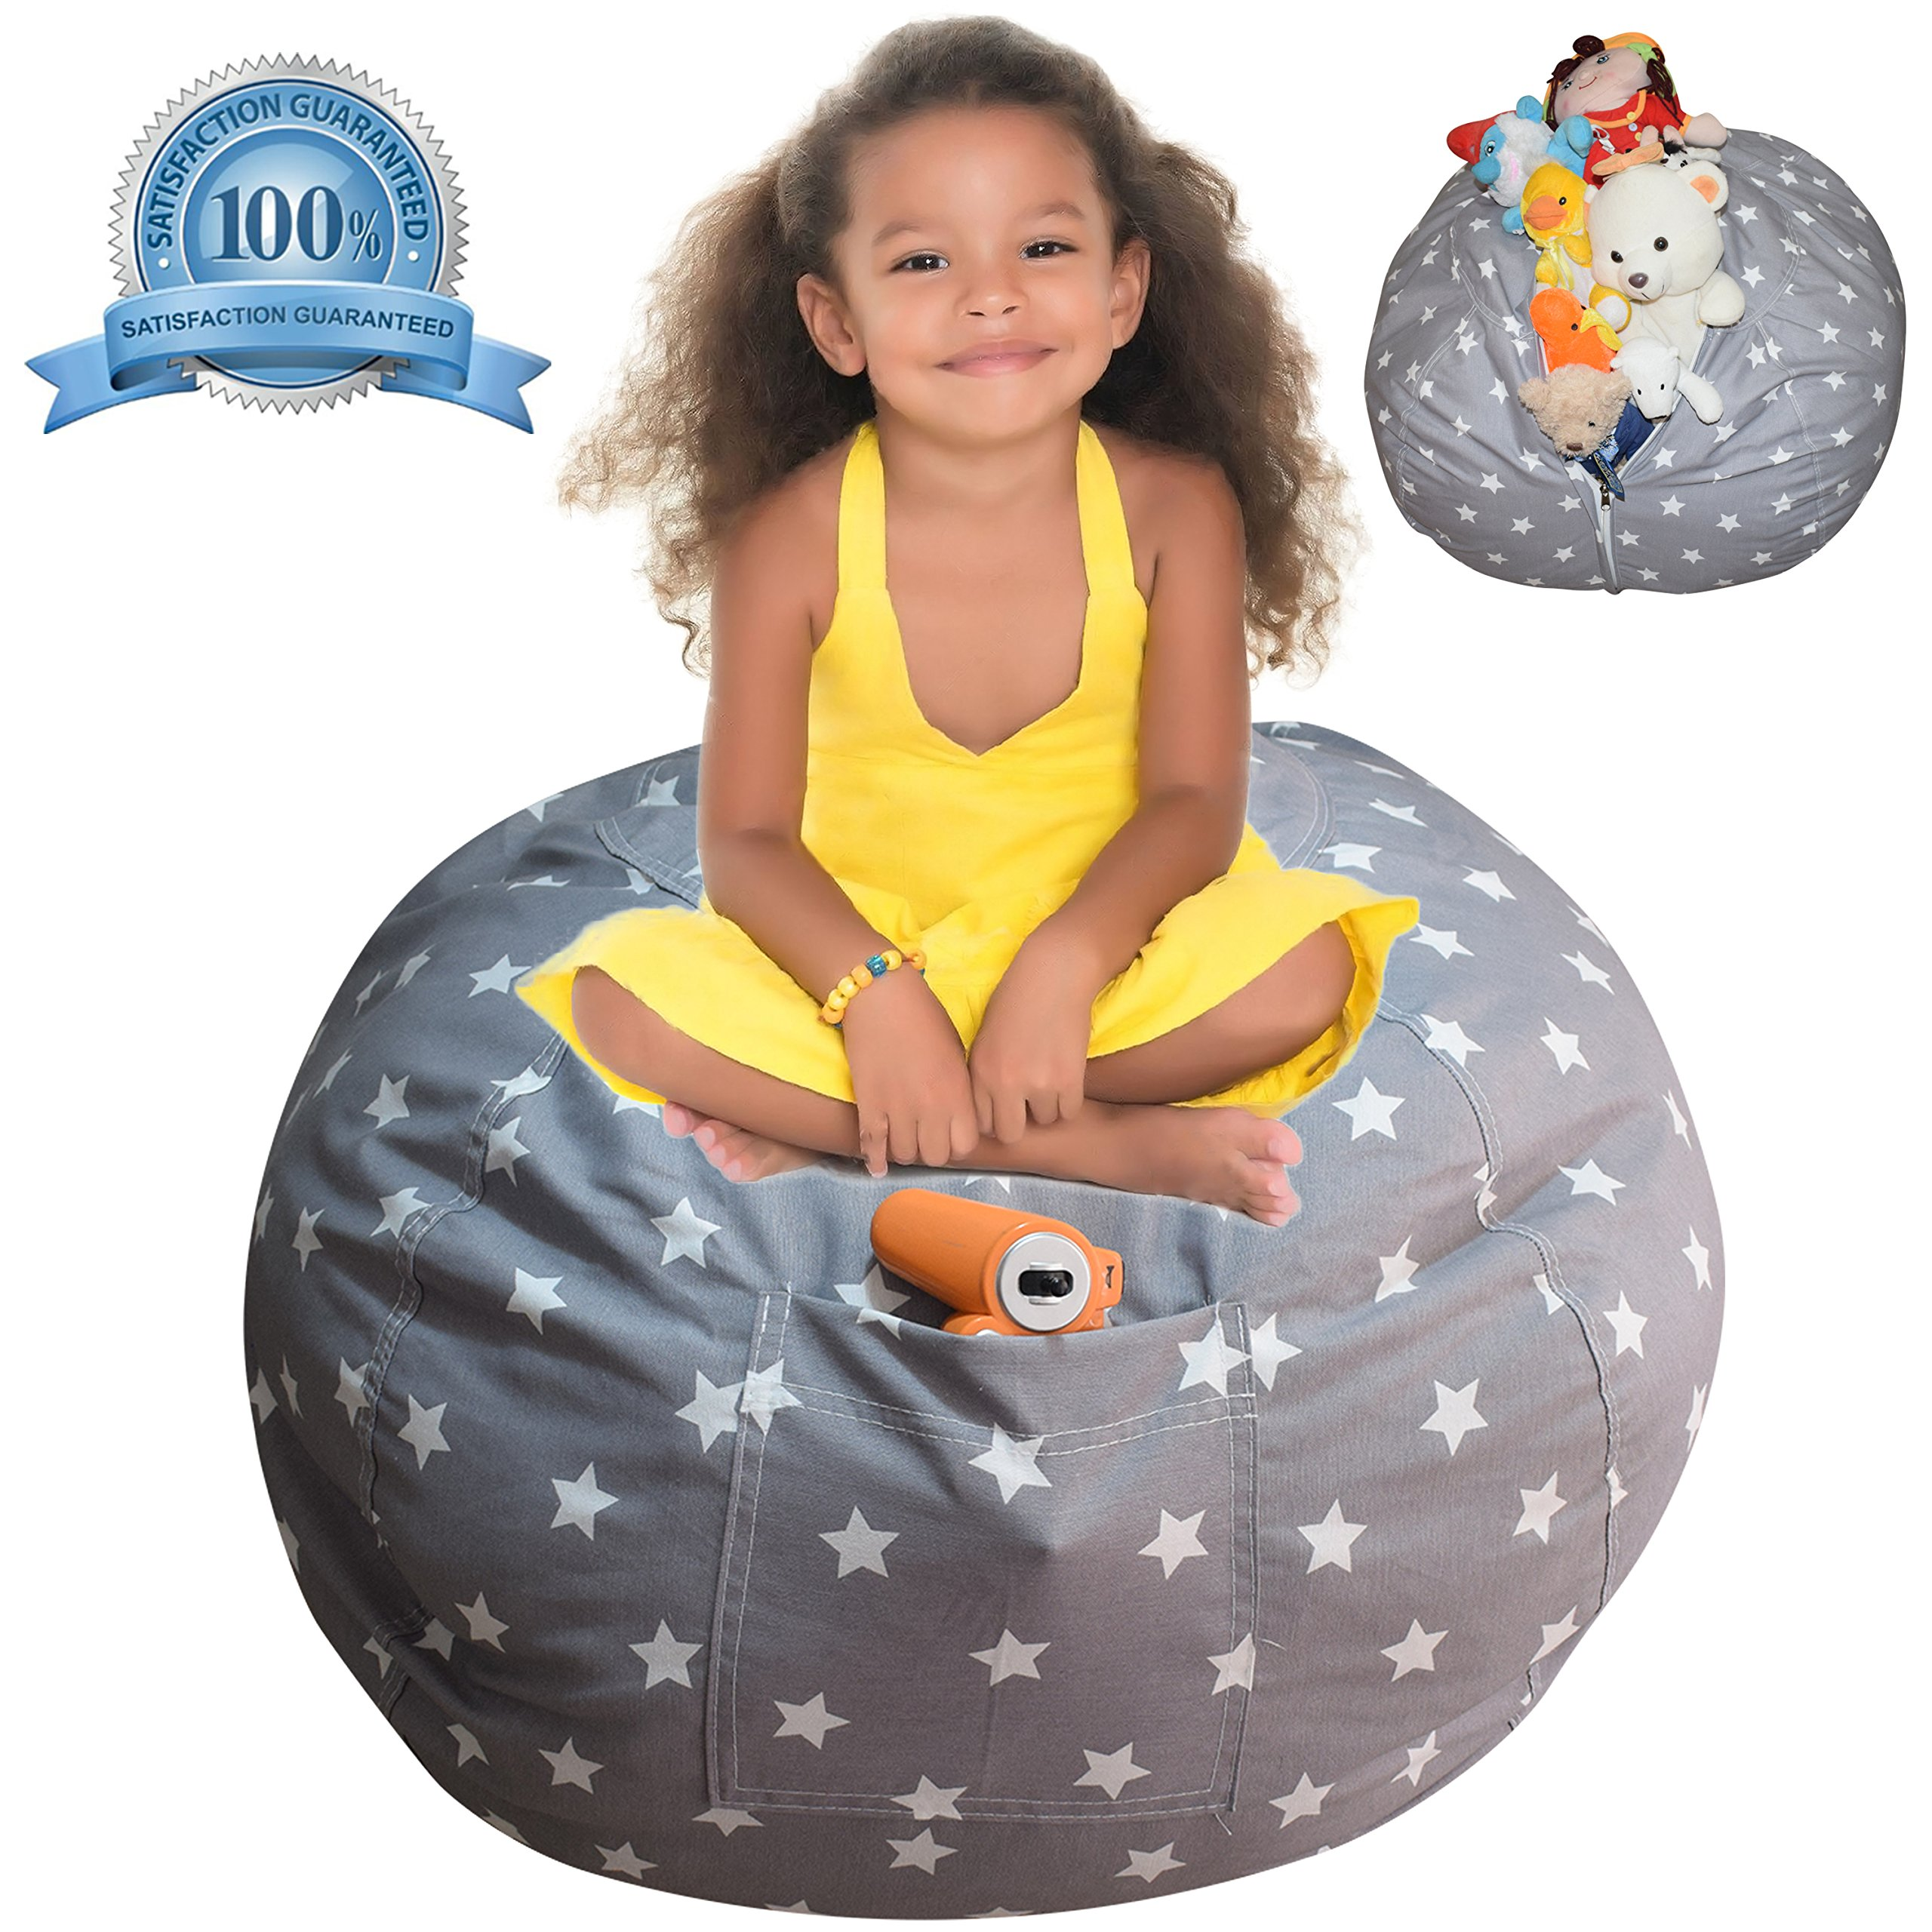 Extra Large Stuffed Animal Storage Bean Bag Cover   Europe Made & Lab Tested Fabric   The Ultimate Storage Solution To Clean Up & Organize Kid's Room   Free E-Book (Unisex Grey)